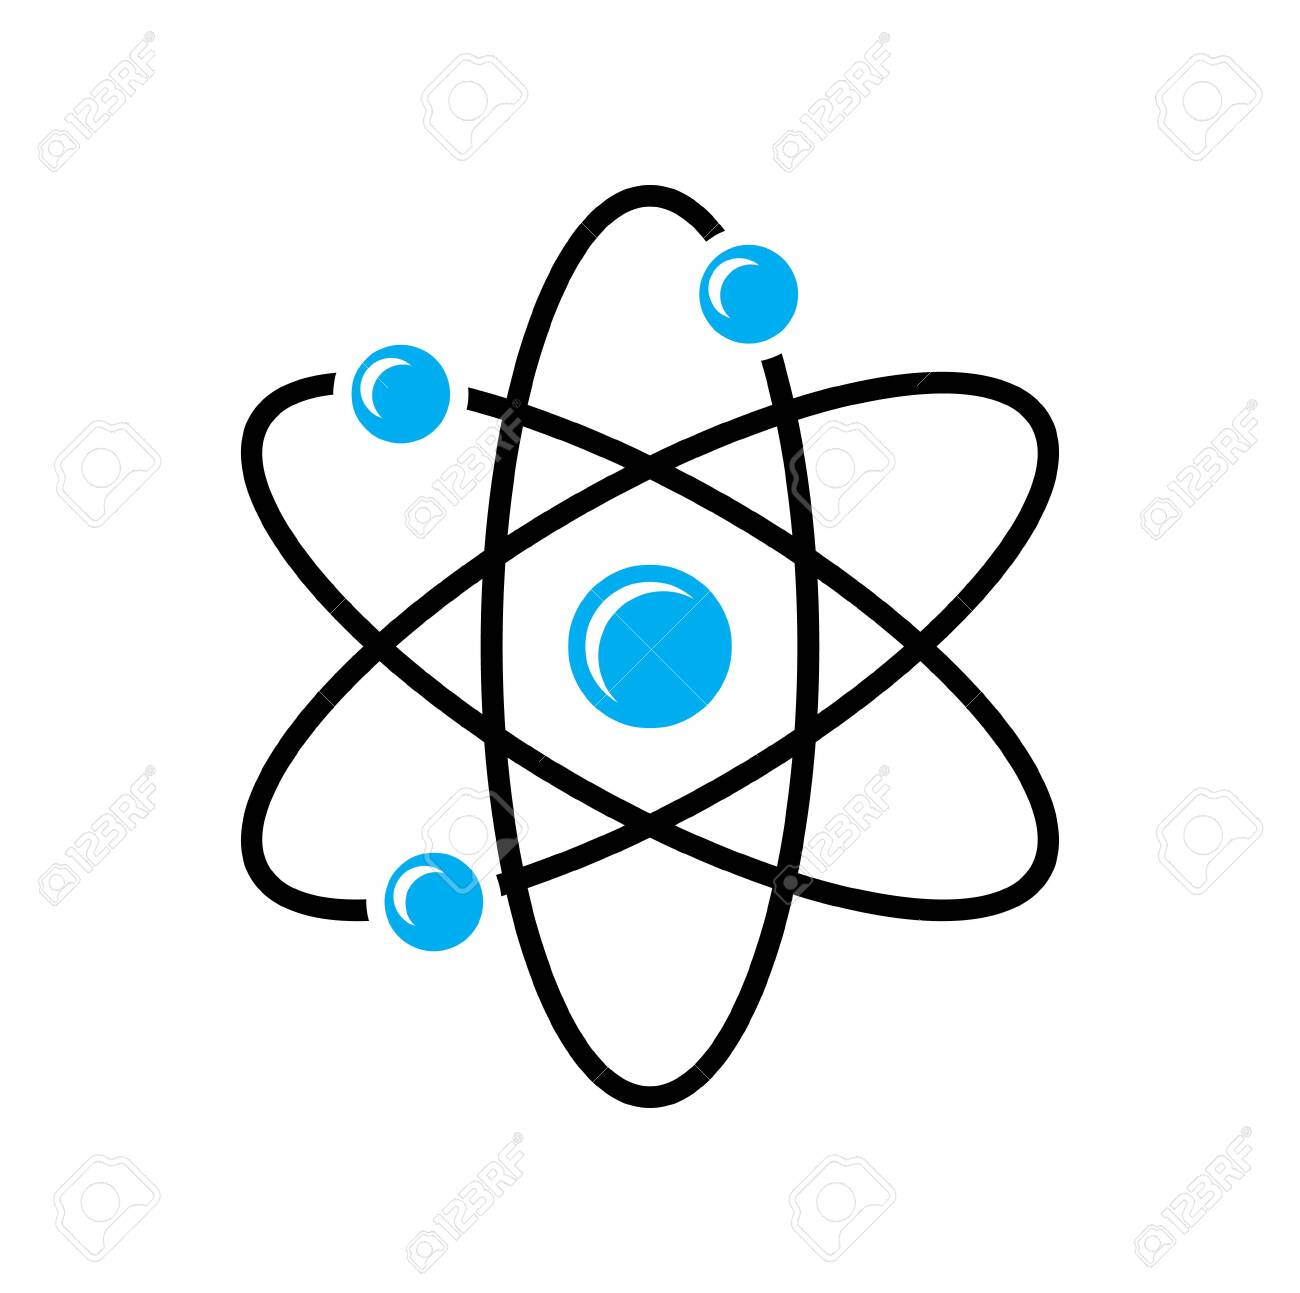 Molecule icon on background for graphic and web design. Simple vector sign. Internet concept symbol for website button or mobile app. - 123802487